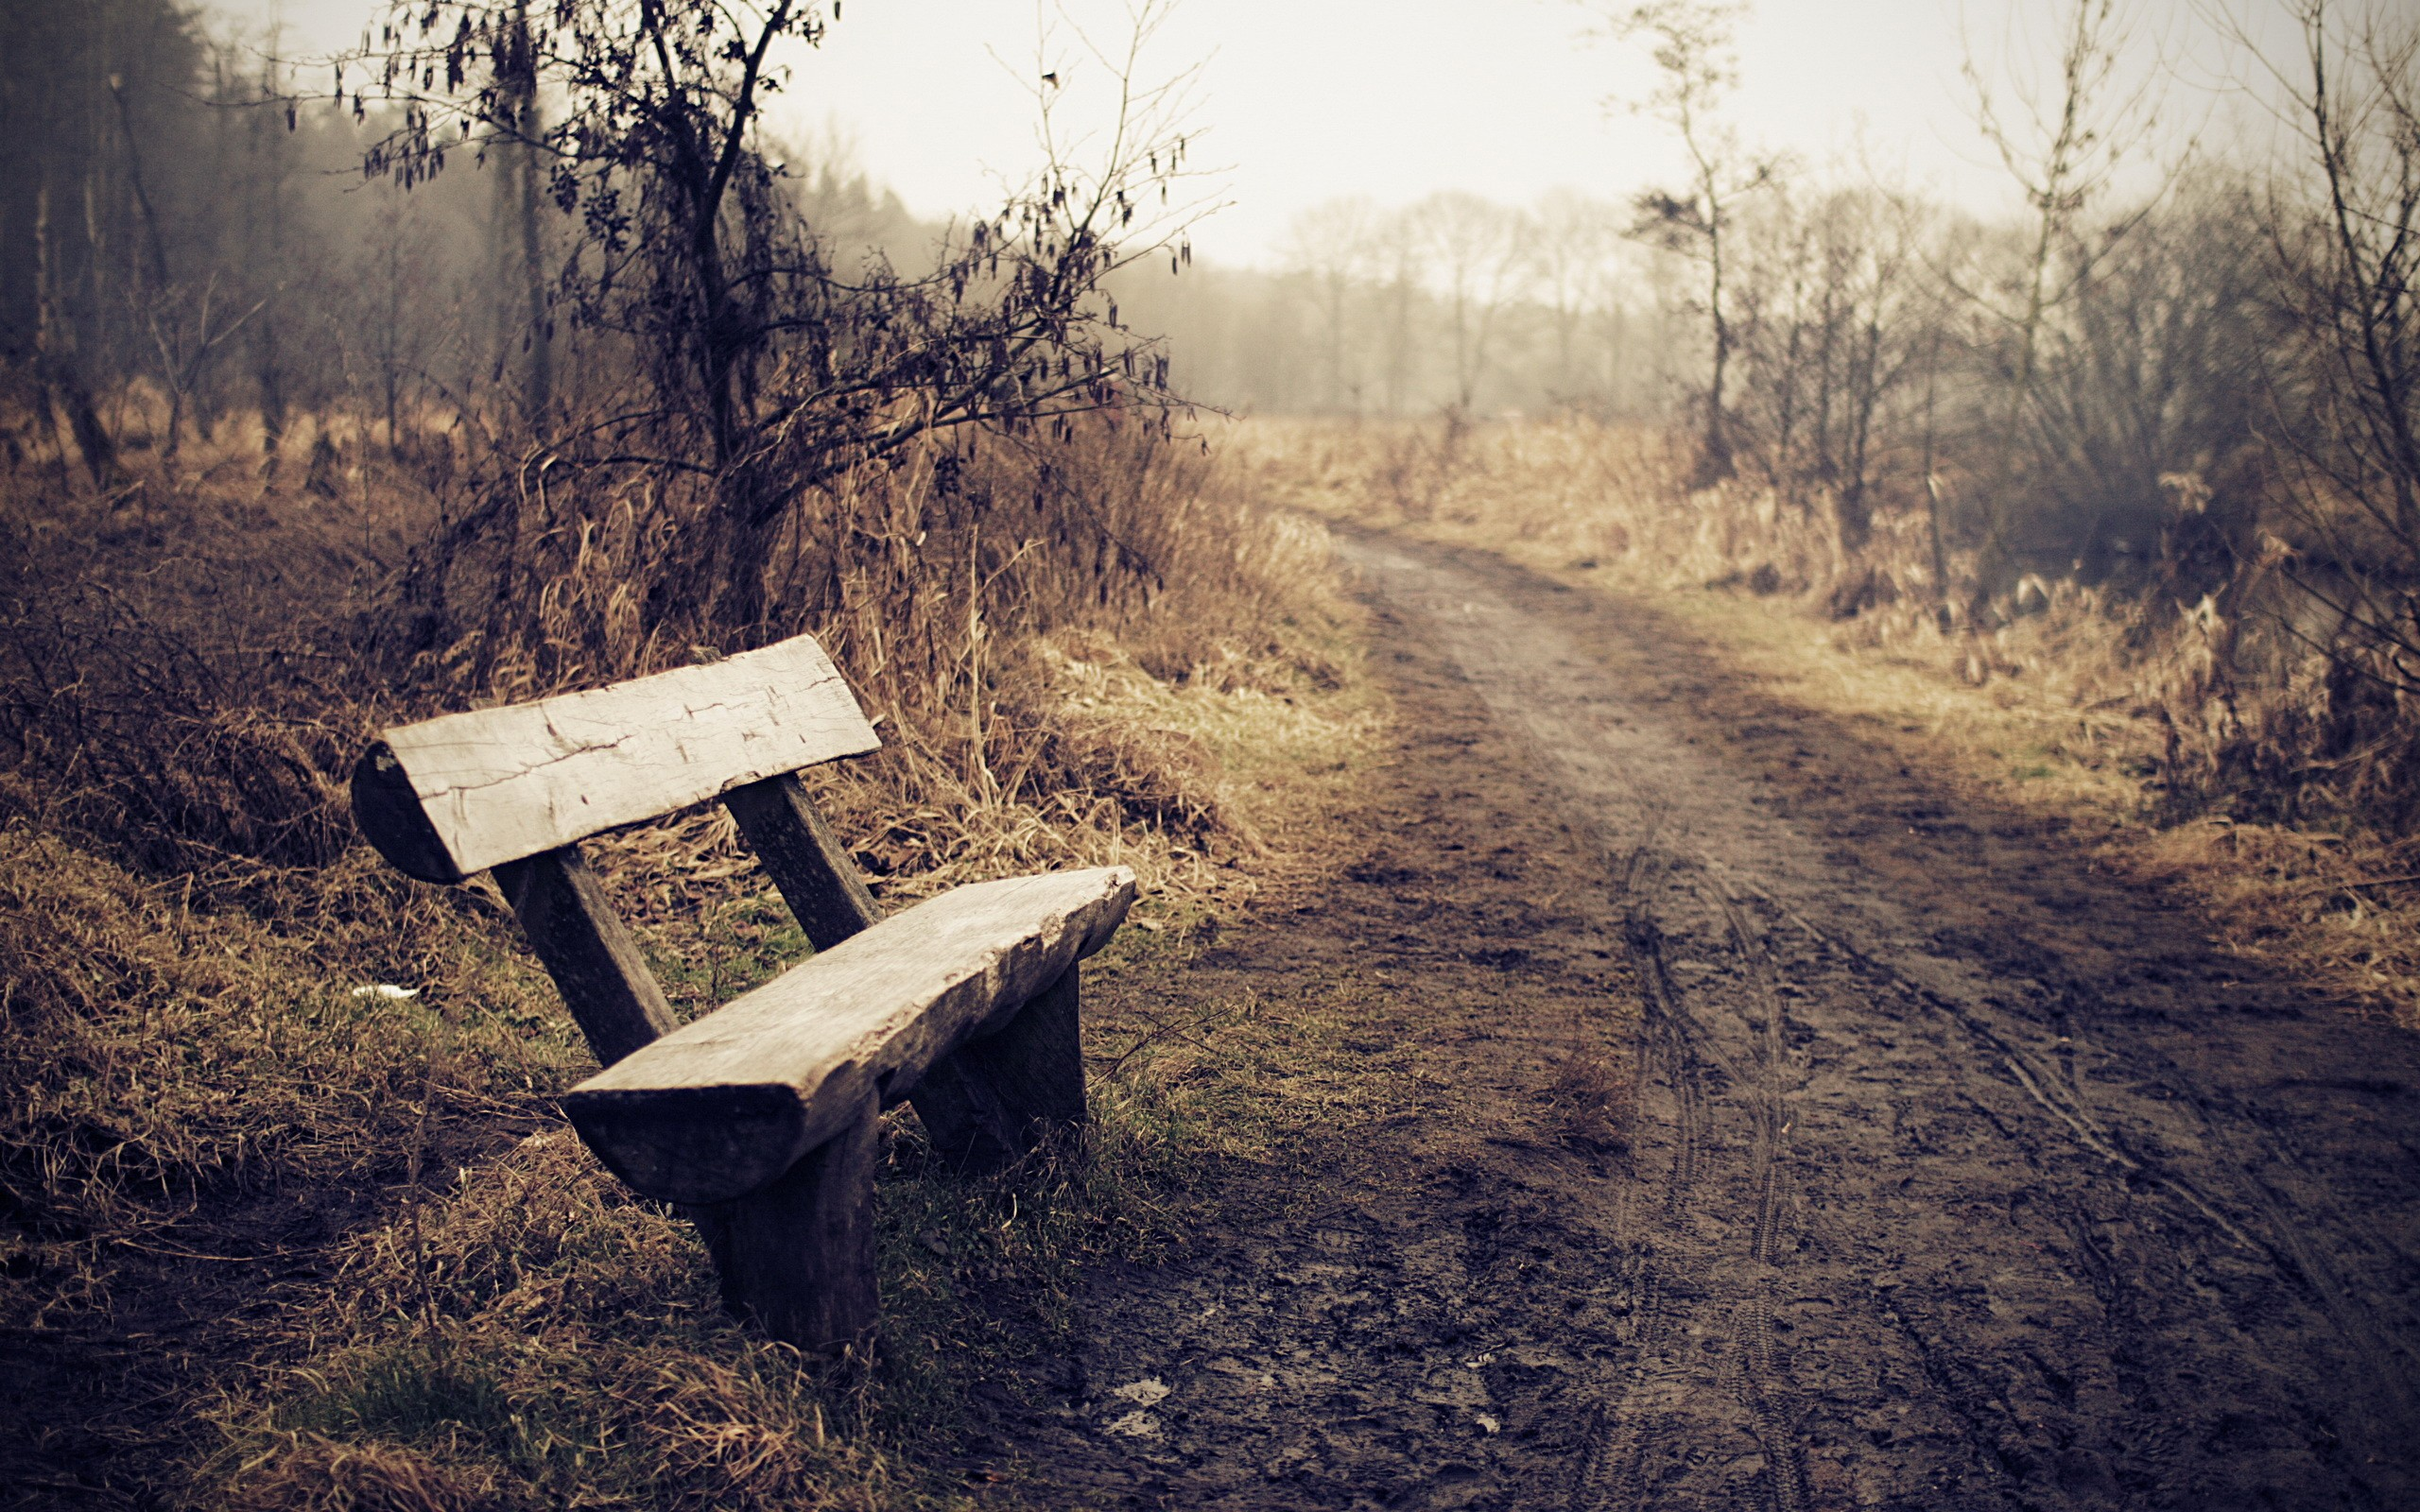 Wooden bench on an off-road route